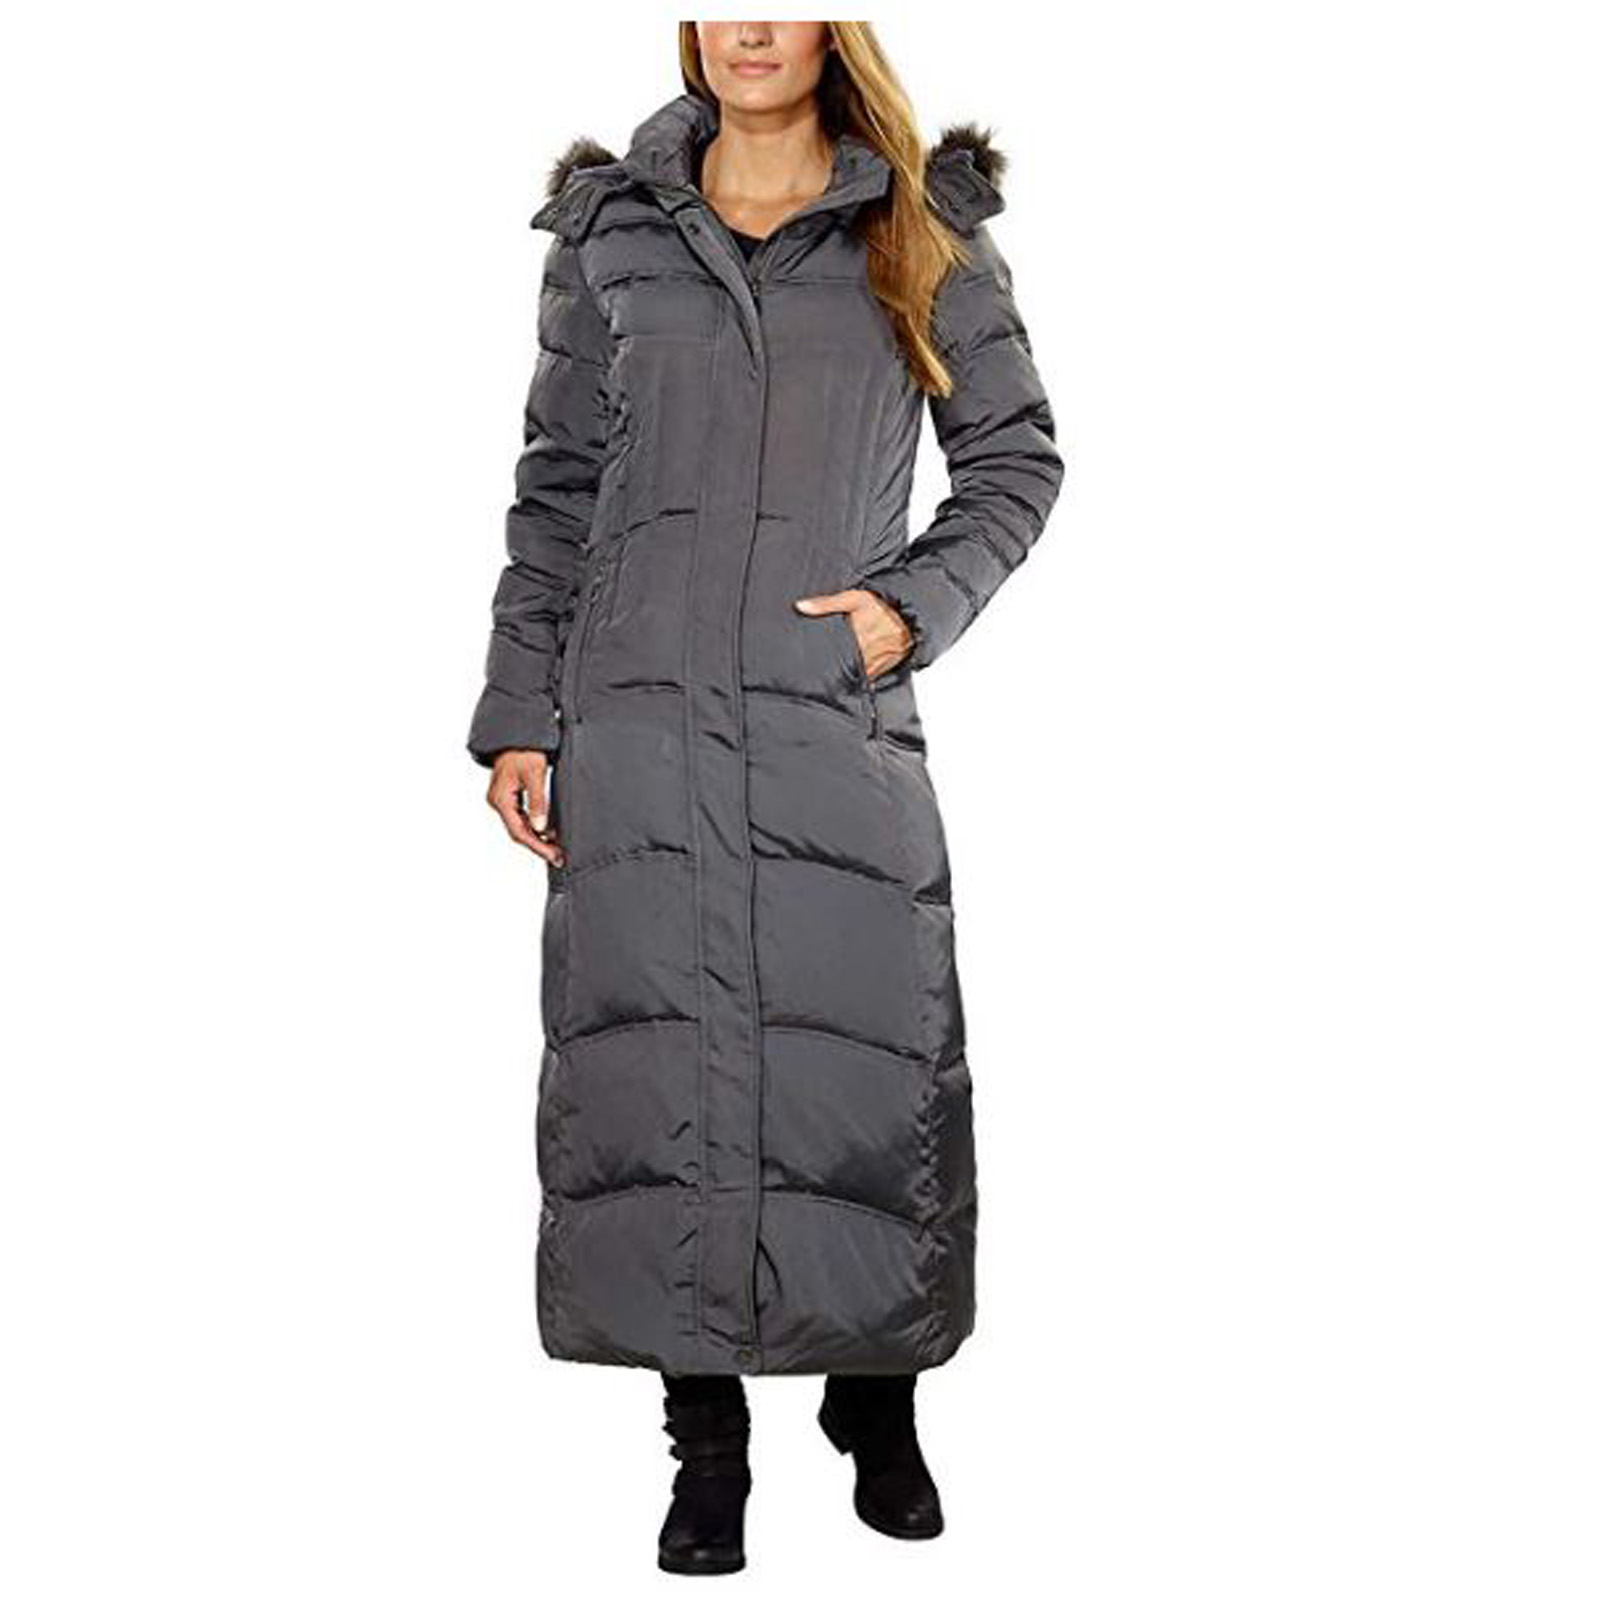 1 MADISON Women's Hooded Maxi Luxe Down Parka Coat (Gunme...